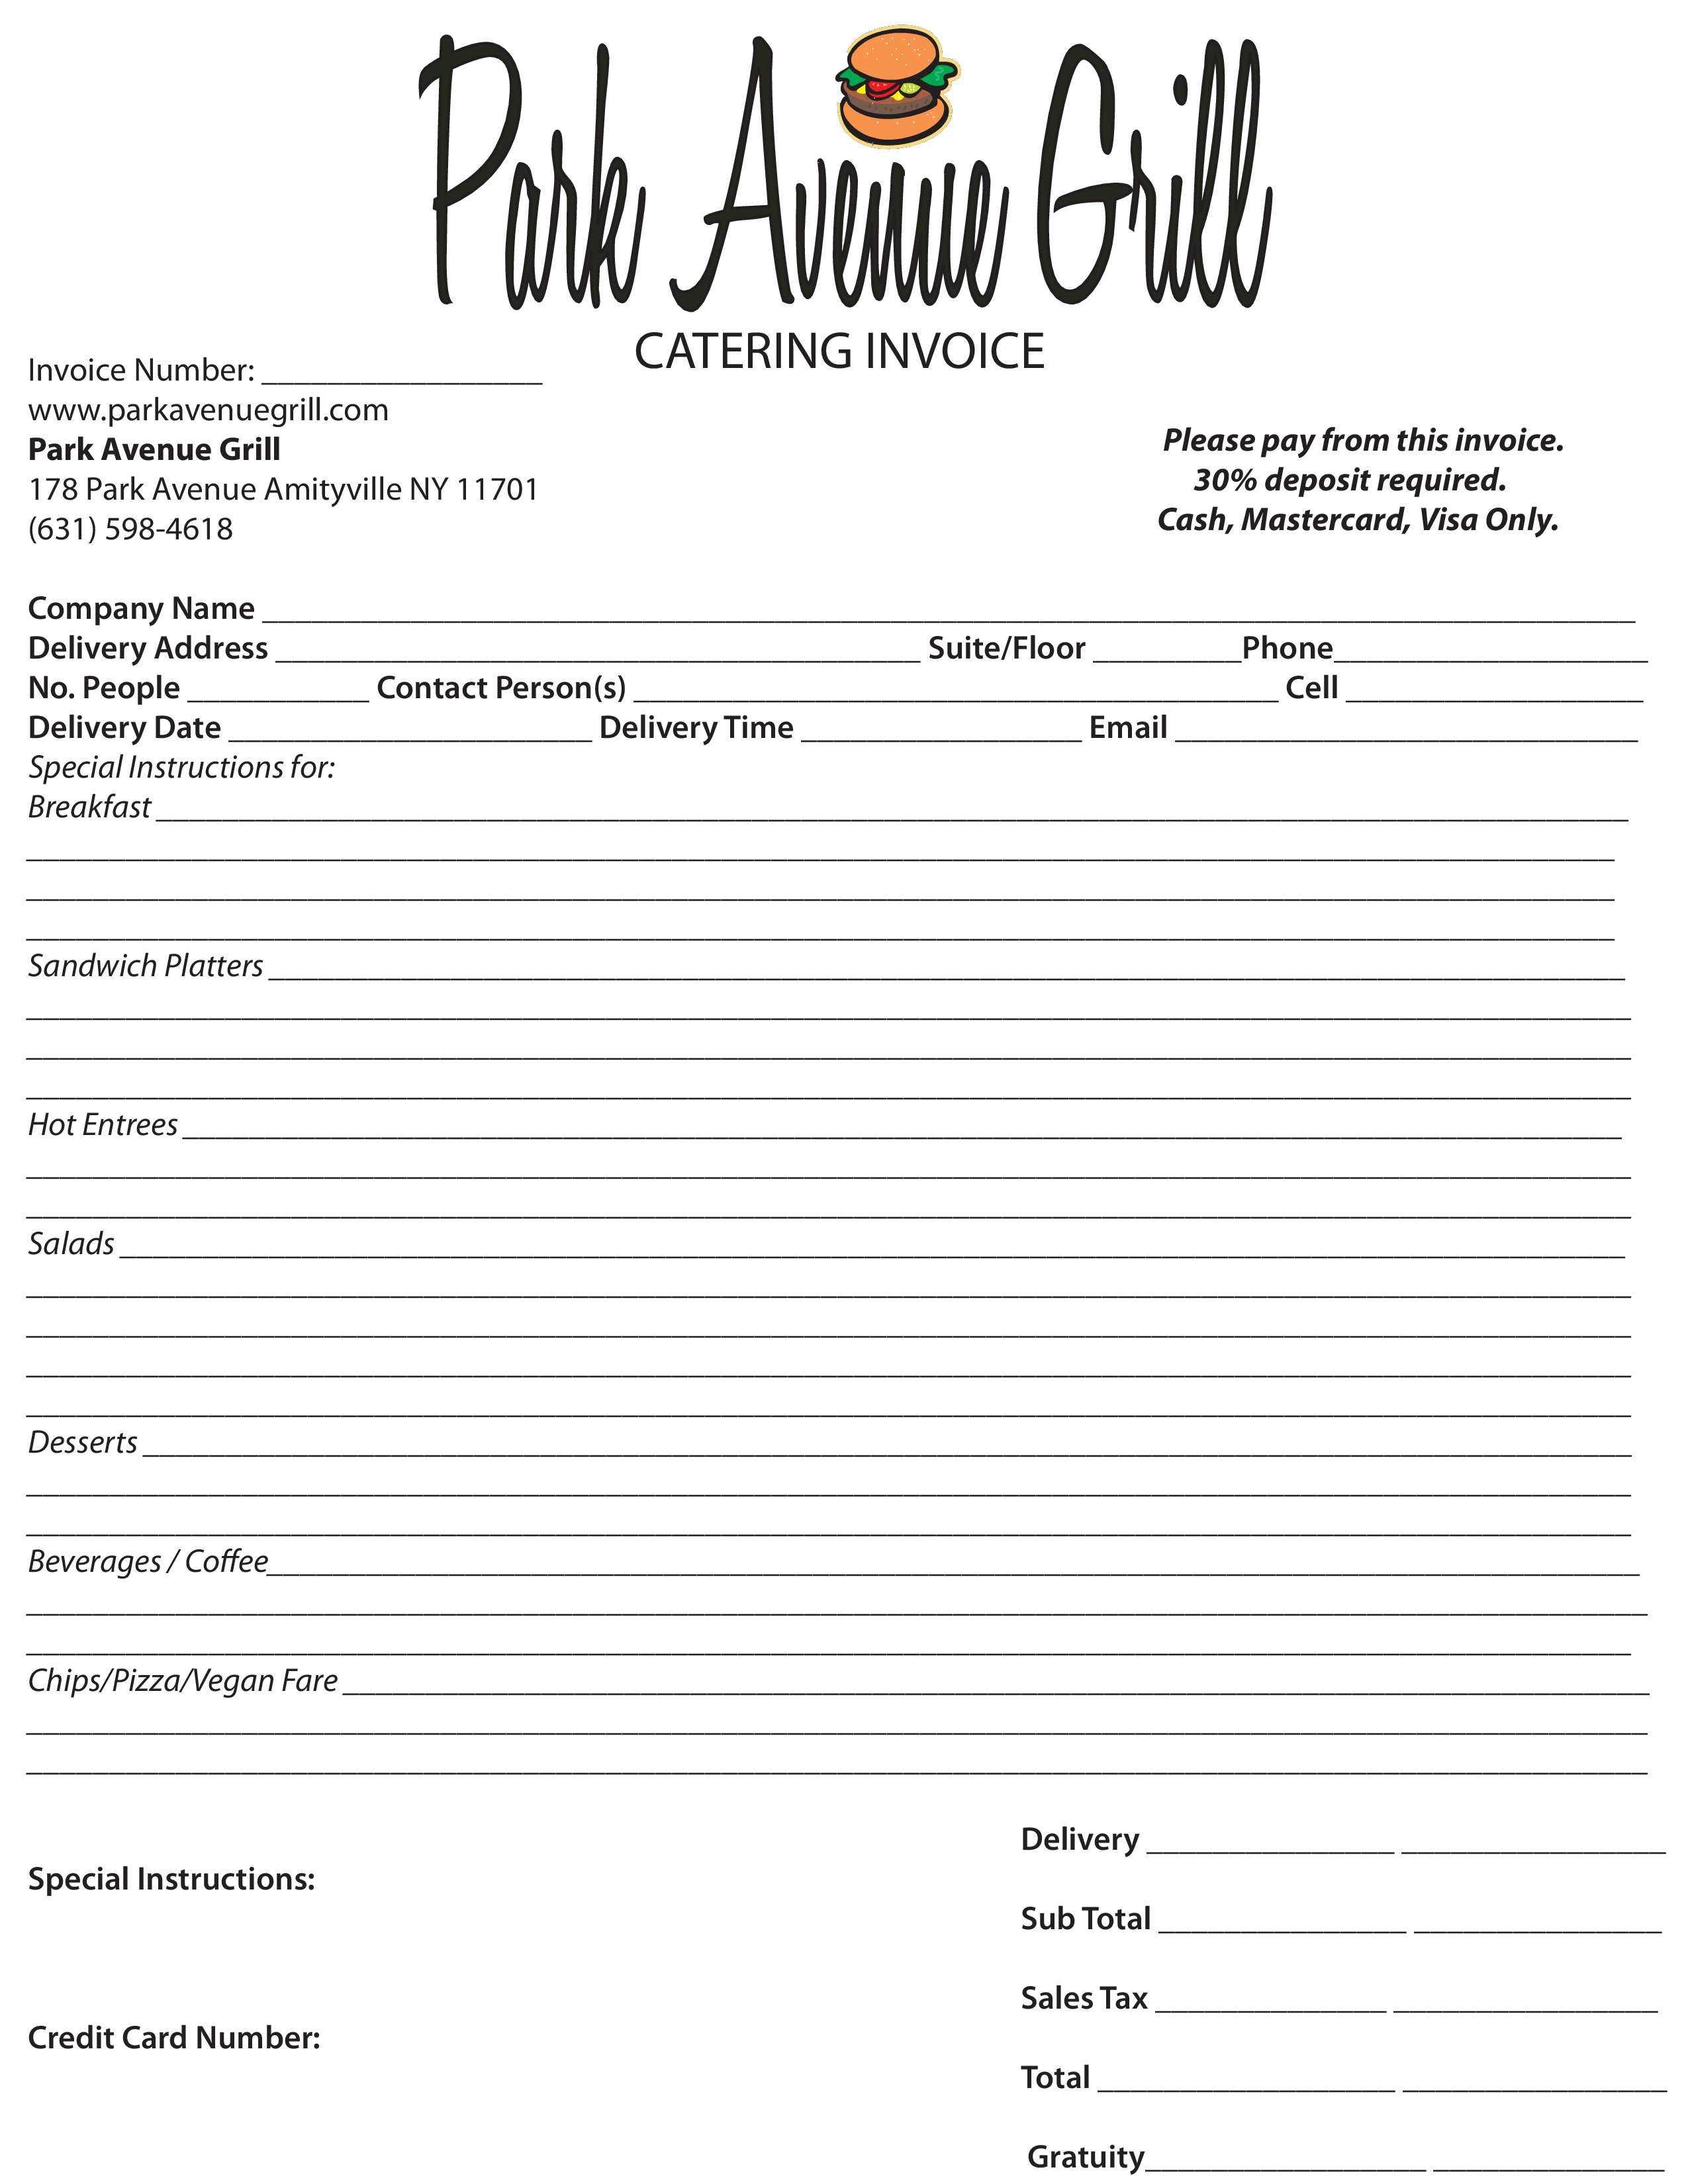 catering receipt main image download template